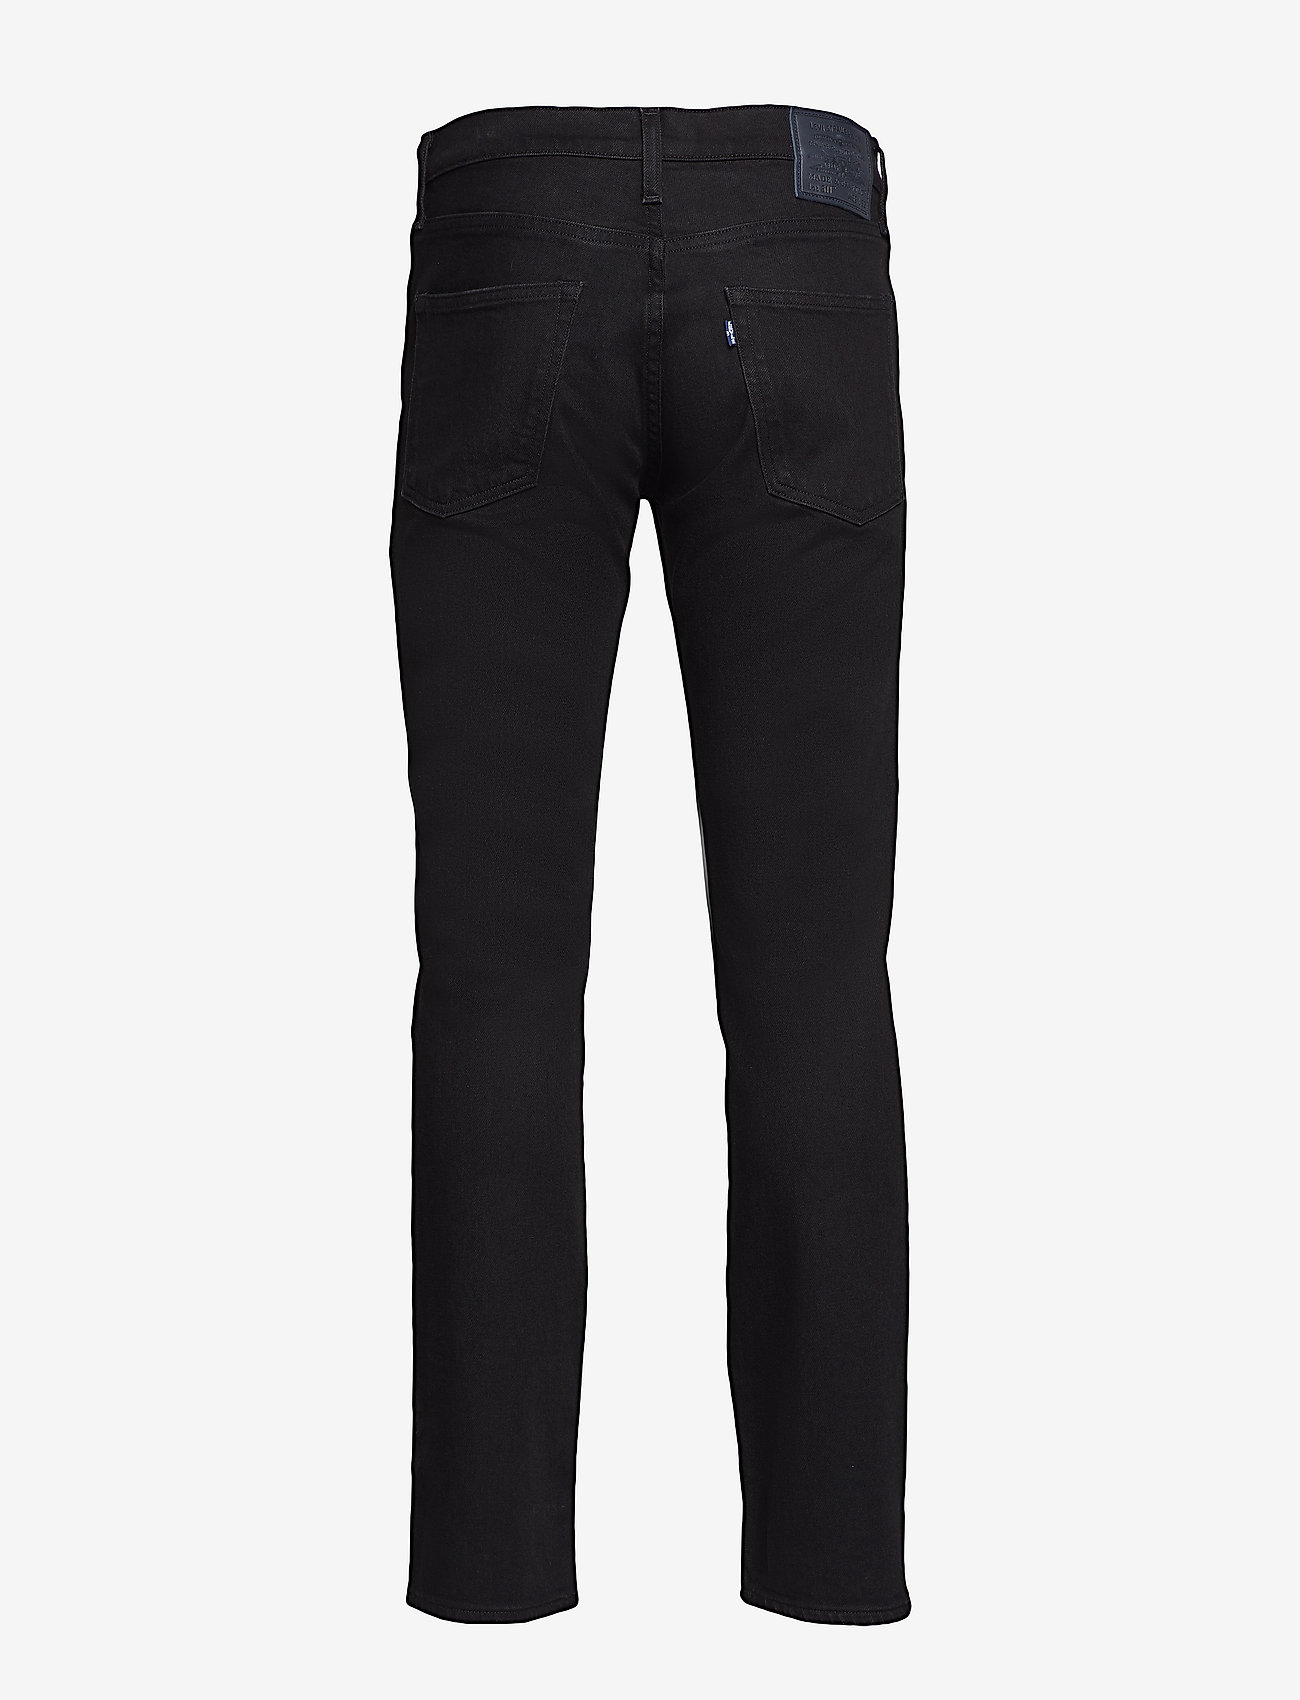 Levi's Made & Crafted - LMC 511 LMC BLACK RINSE 1 - slim jeans - blacks - 1